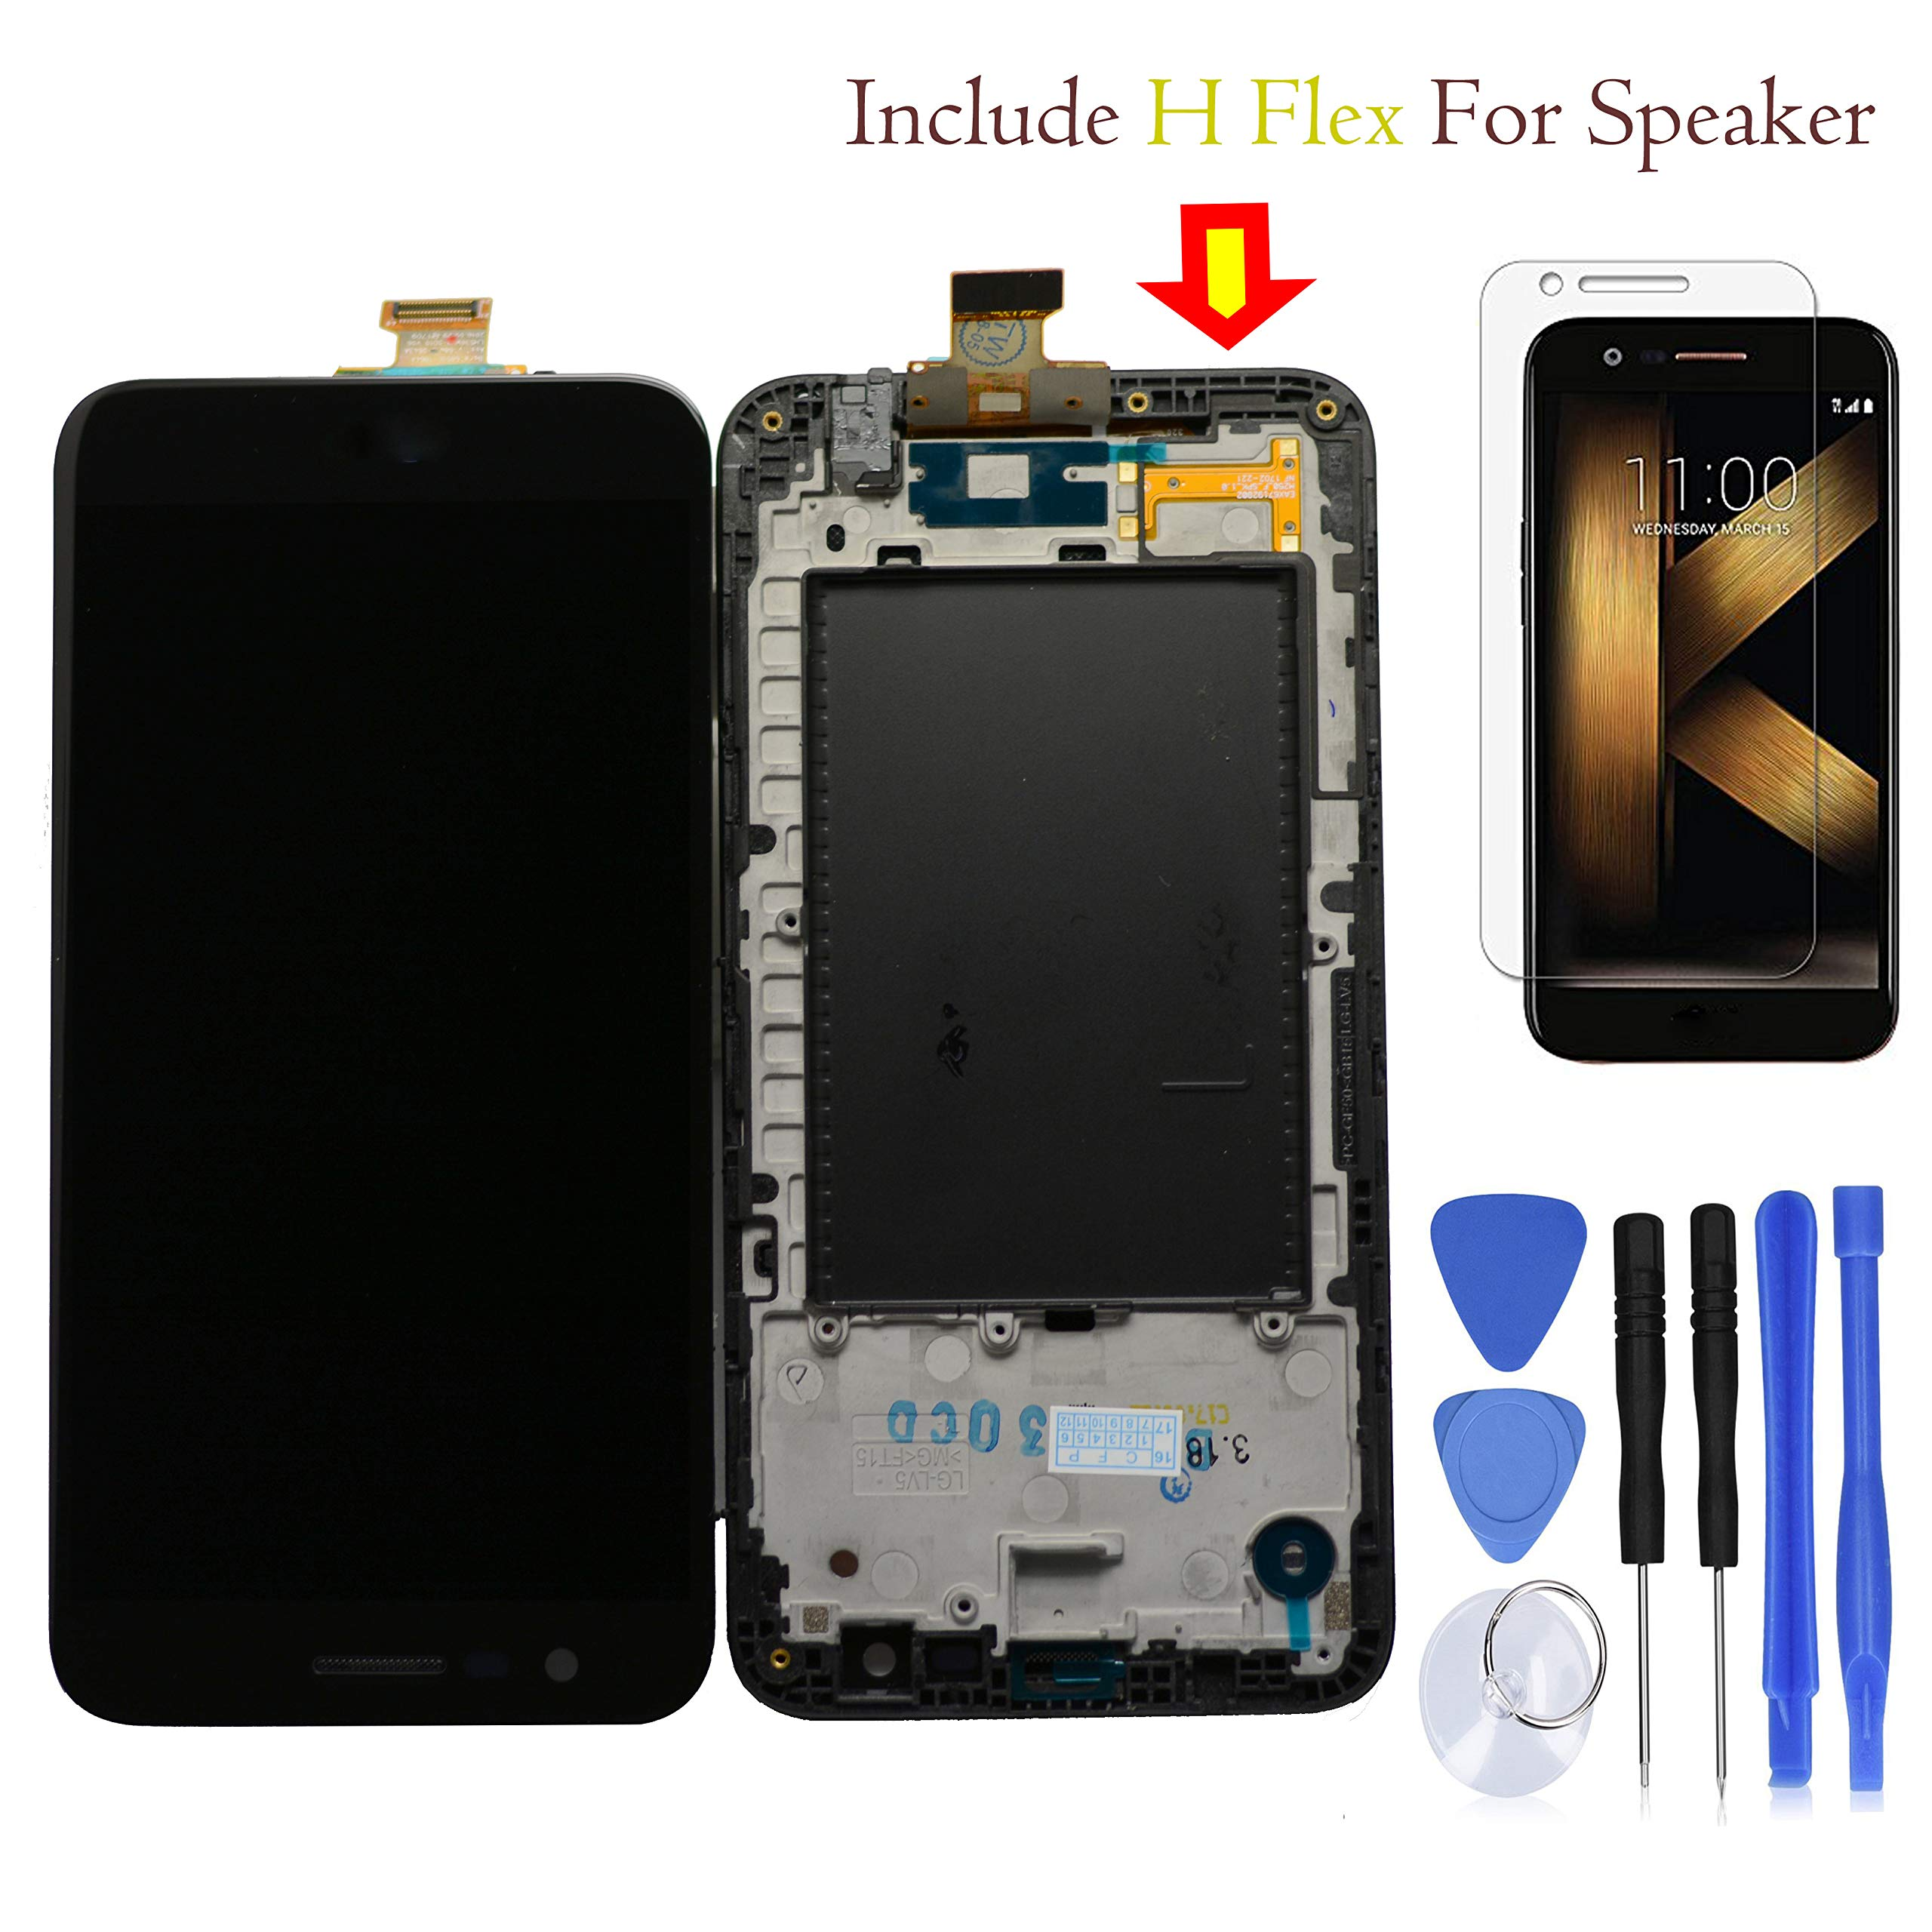 Eaglewireless Best Quality Compatible K20 PLUS Full LCD Assembly With Touch Screen Digitizer and LCD Pre-installed Replacement With Frame Housing For LG K20 Plus T-Mobile TP260 MP260 / Verizon-VS501 by Eaglewireless